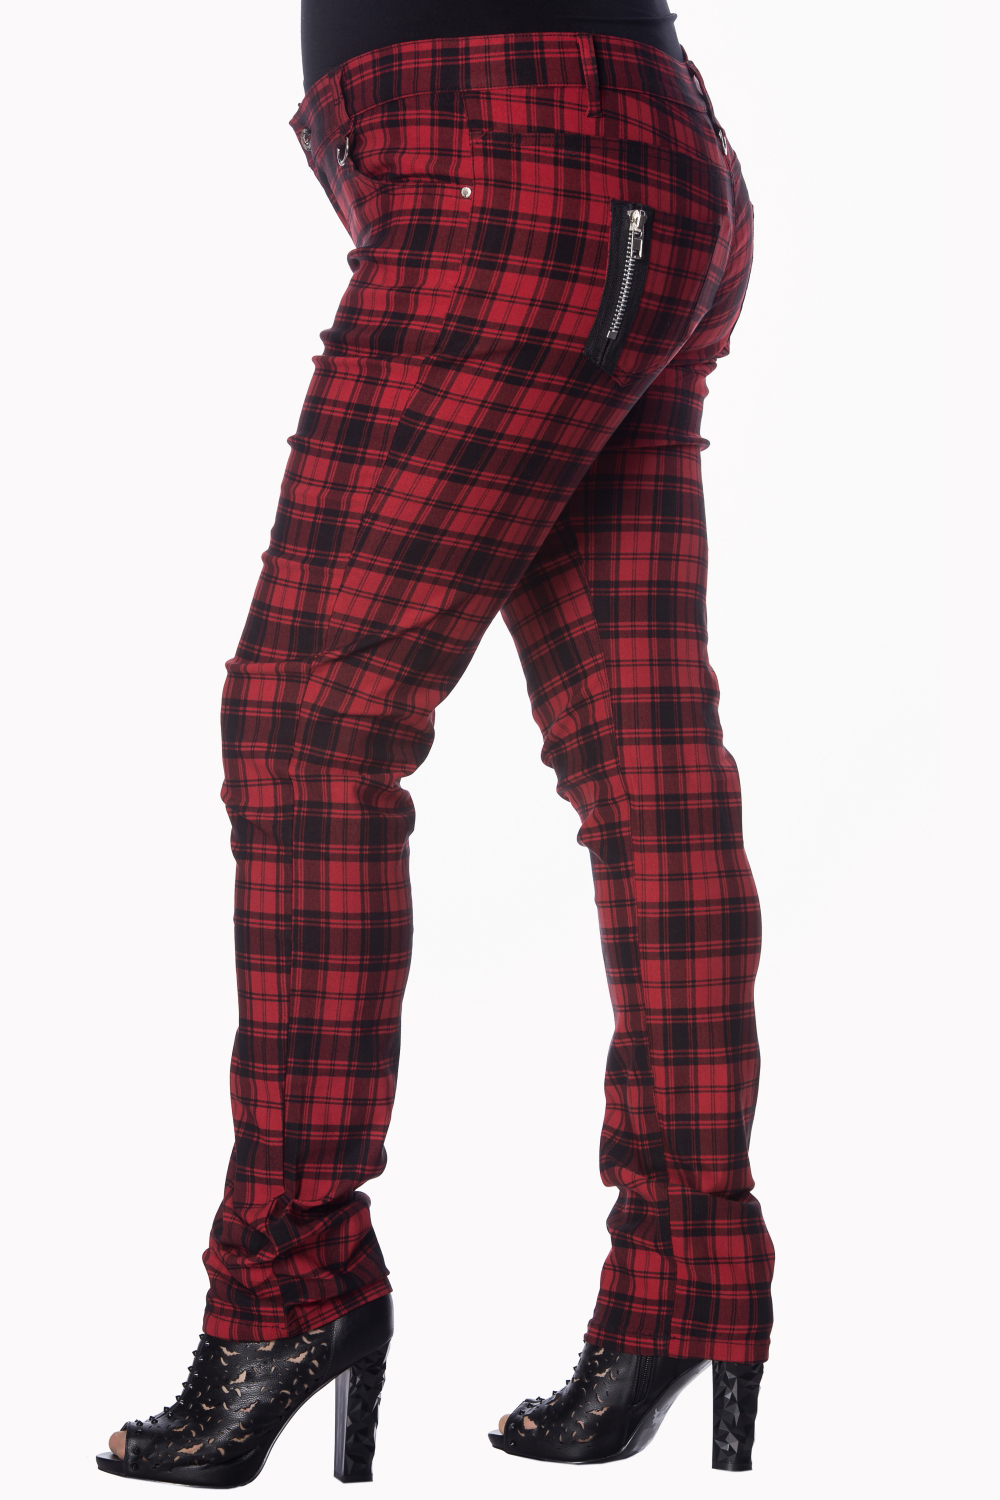 a4cc226c9dd Plus Size Red Checked Skinny Jeans by Banned Apparel